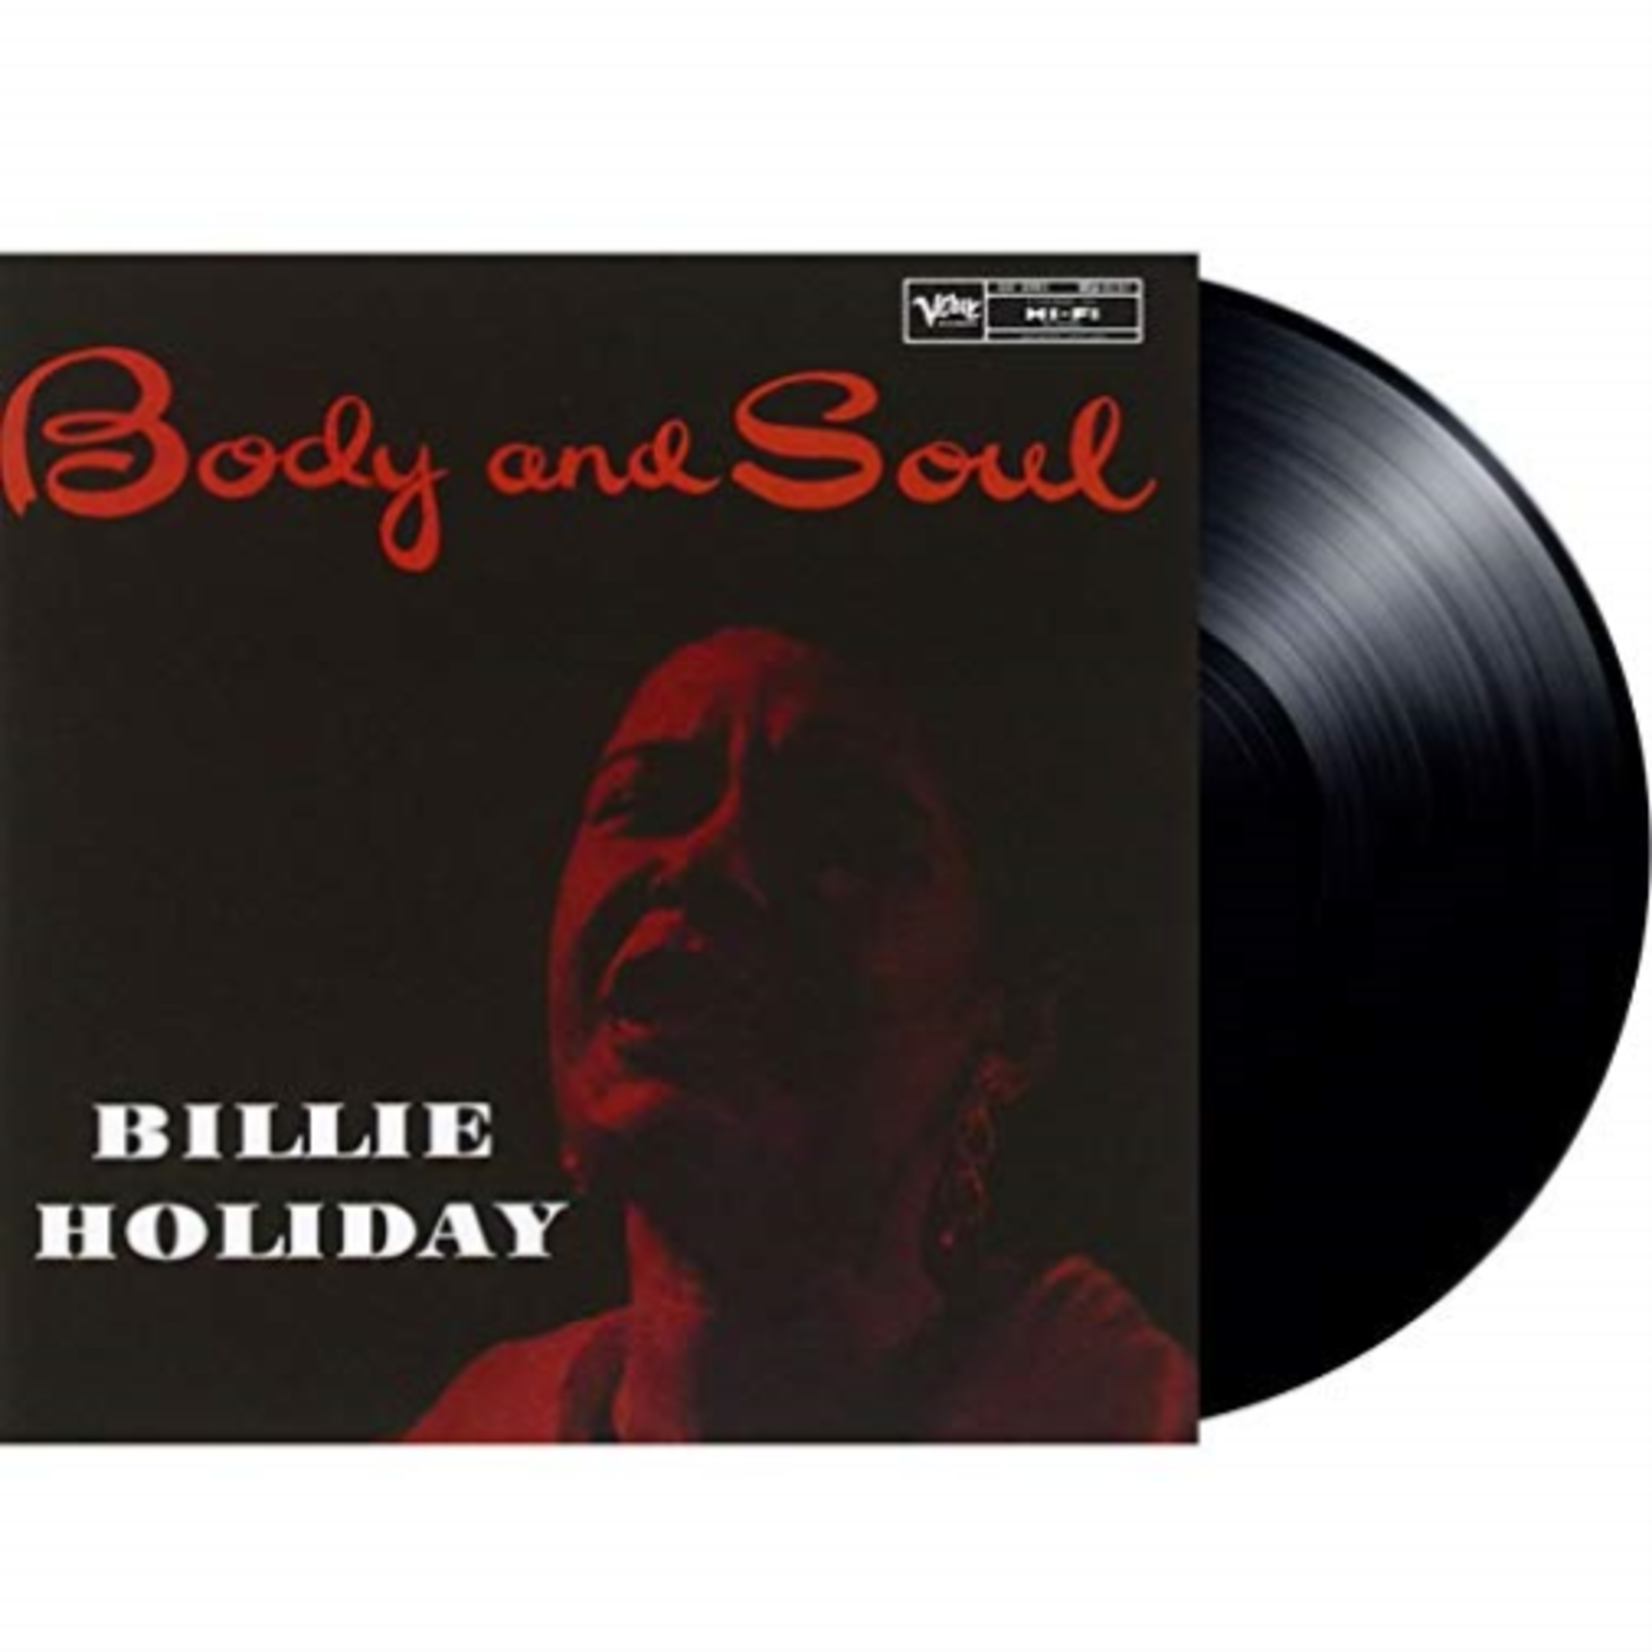 BILLIE HOLIDAY BODY AND SOUL (LP)